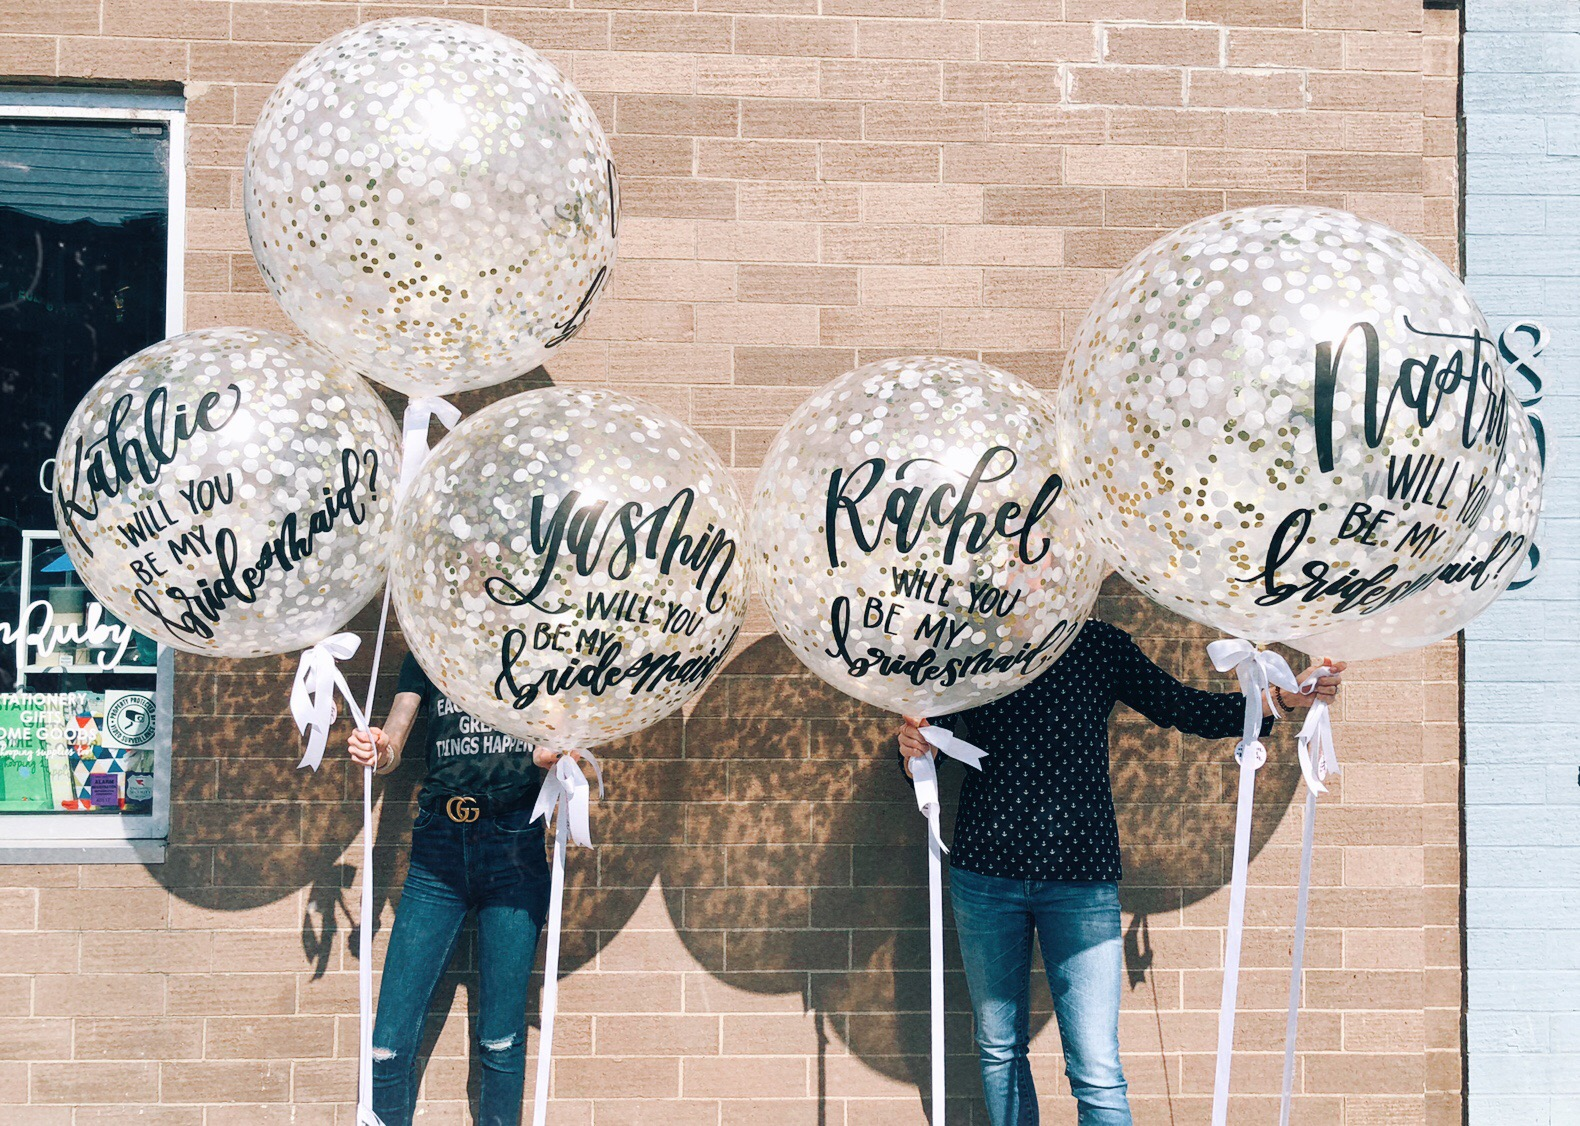 vroom_vroom_balloon_bridesmaid_jumbo_confetti_hand_lettered.JPG